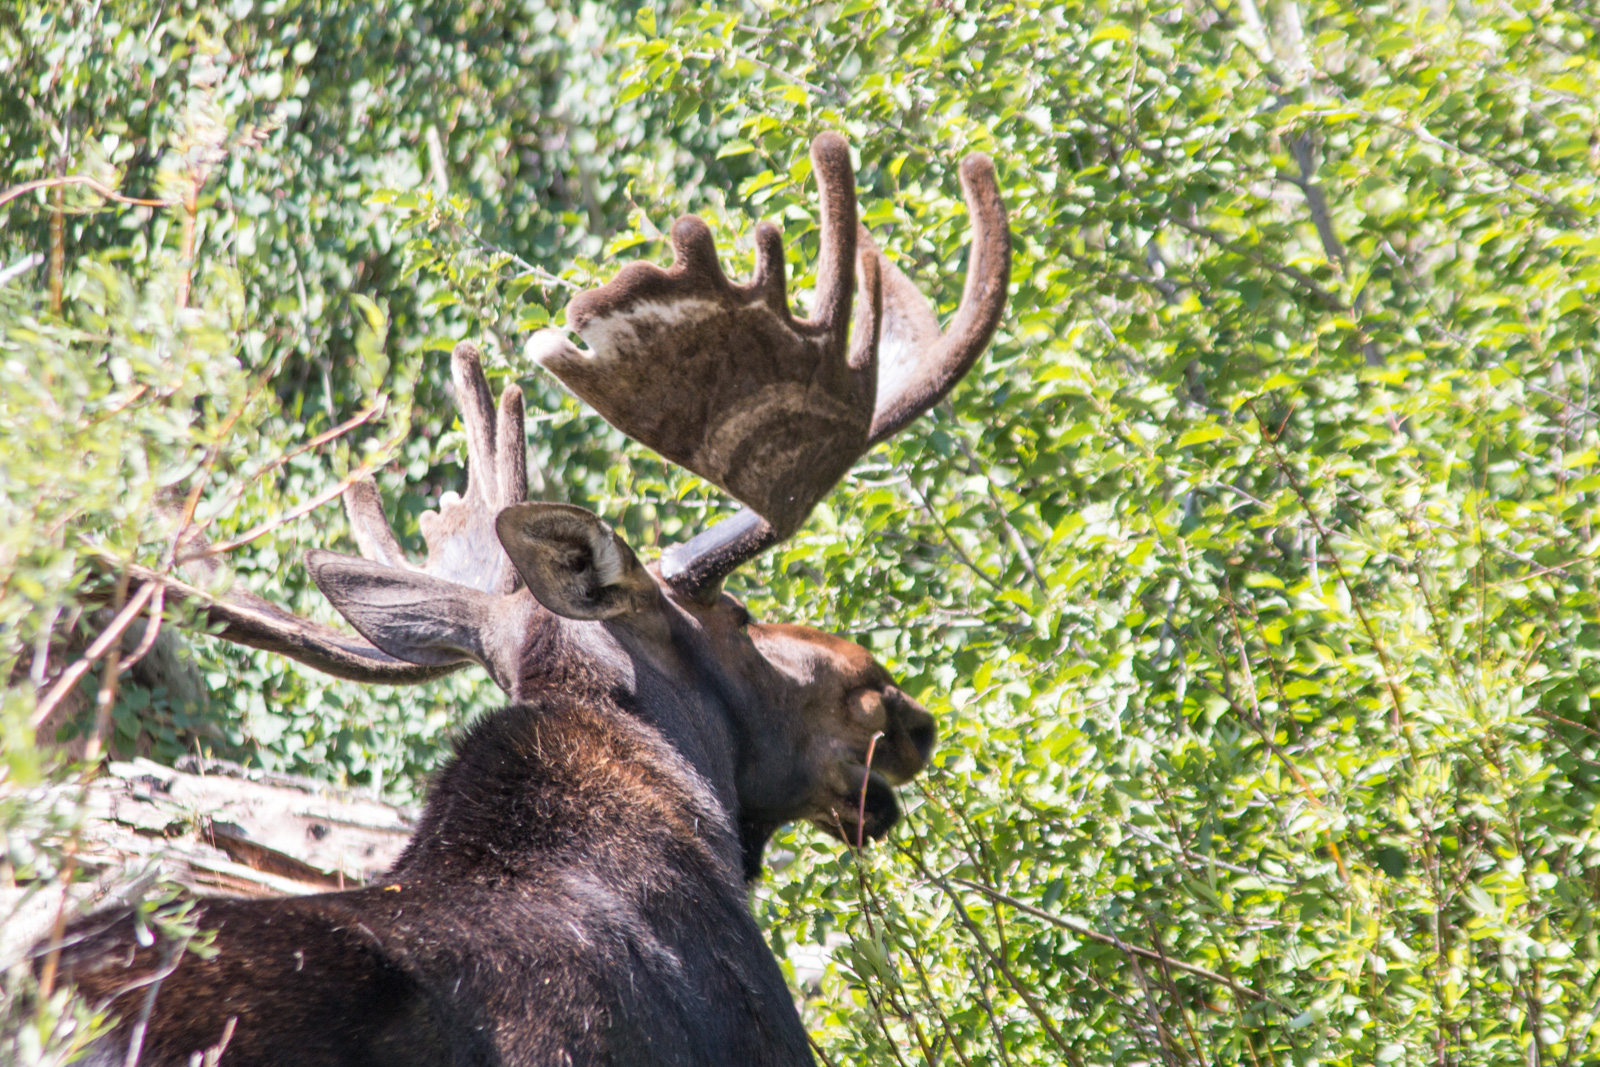 RMNP Bull Moose – Munching Away